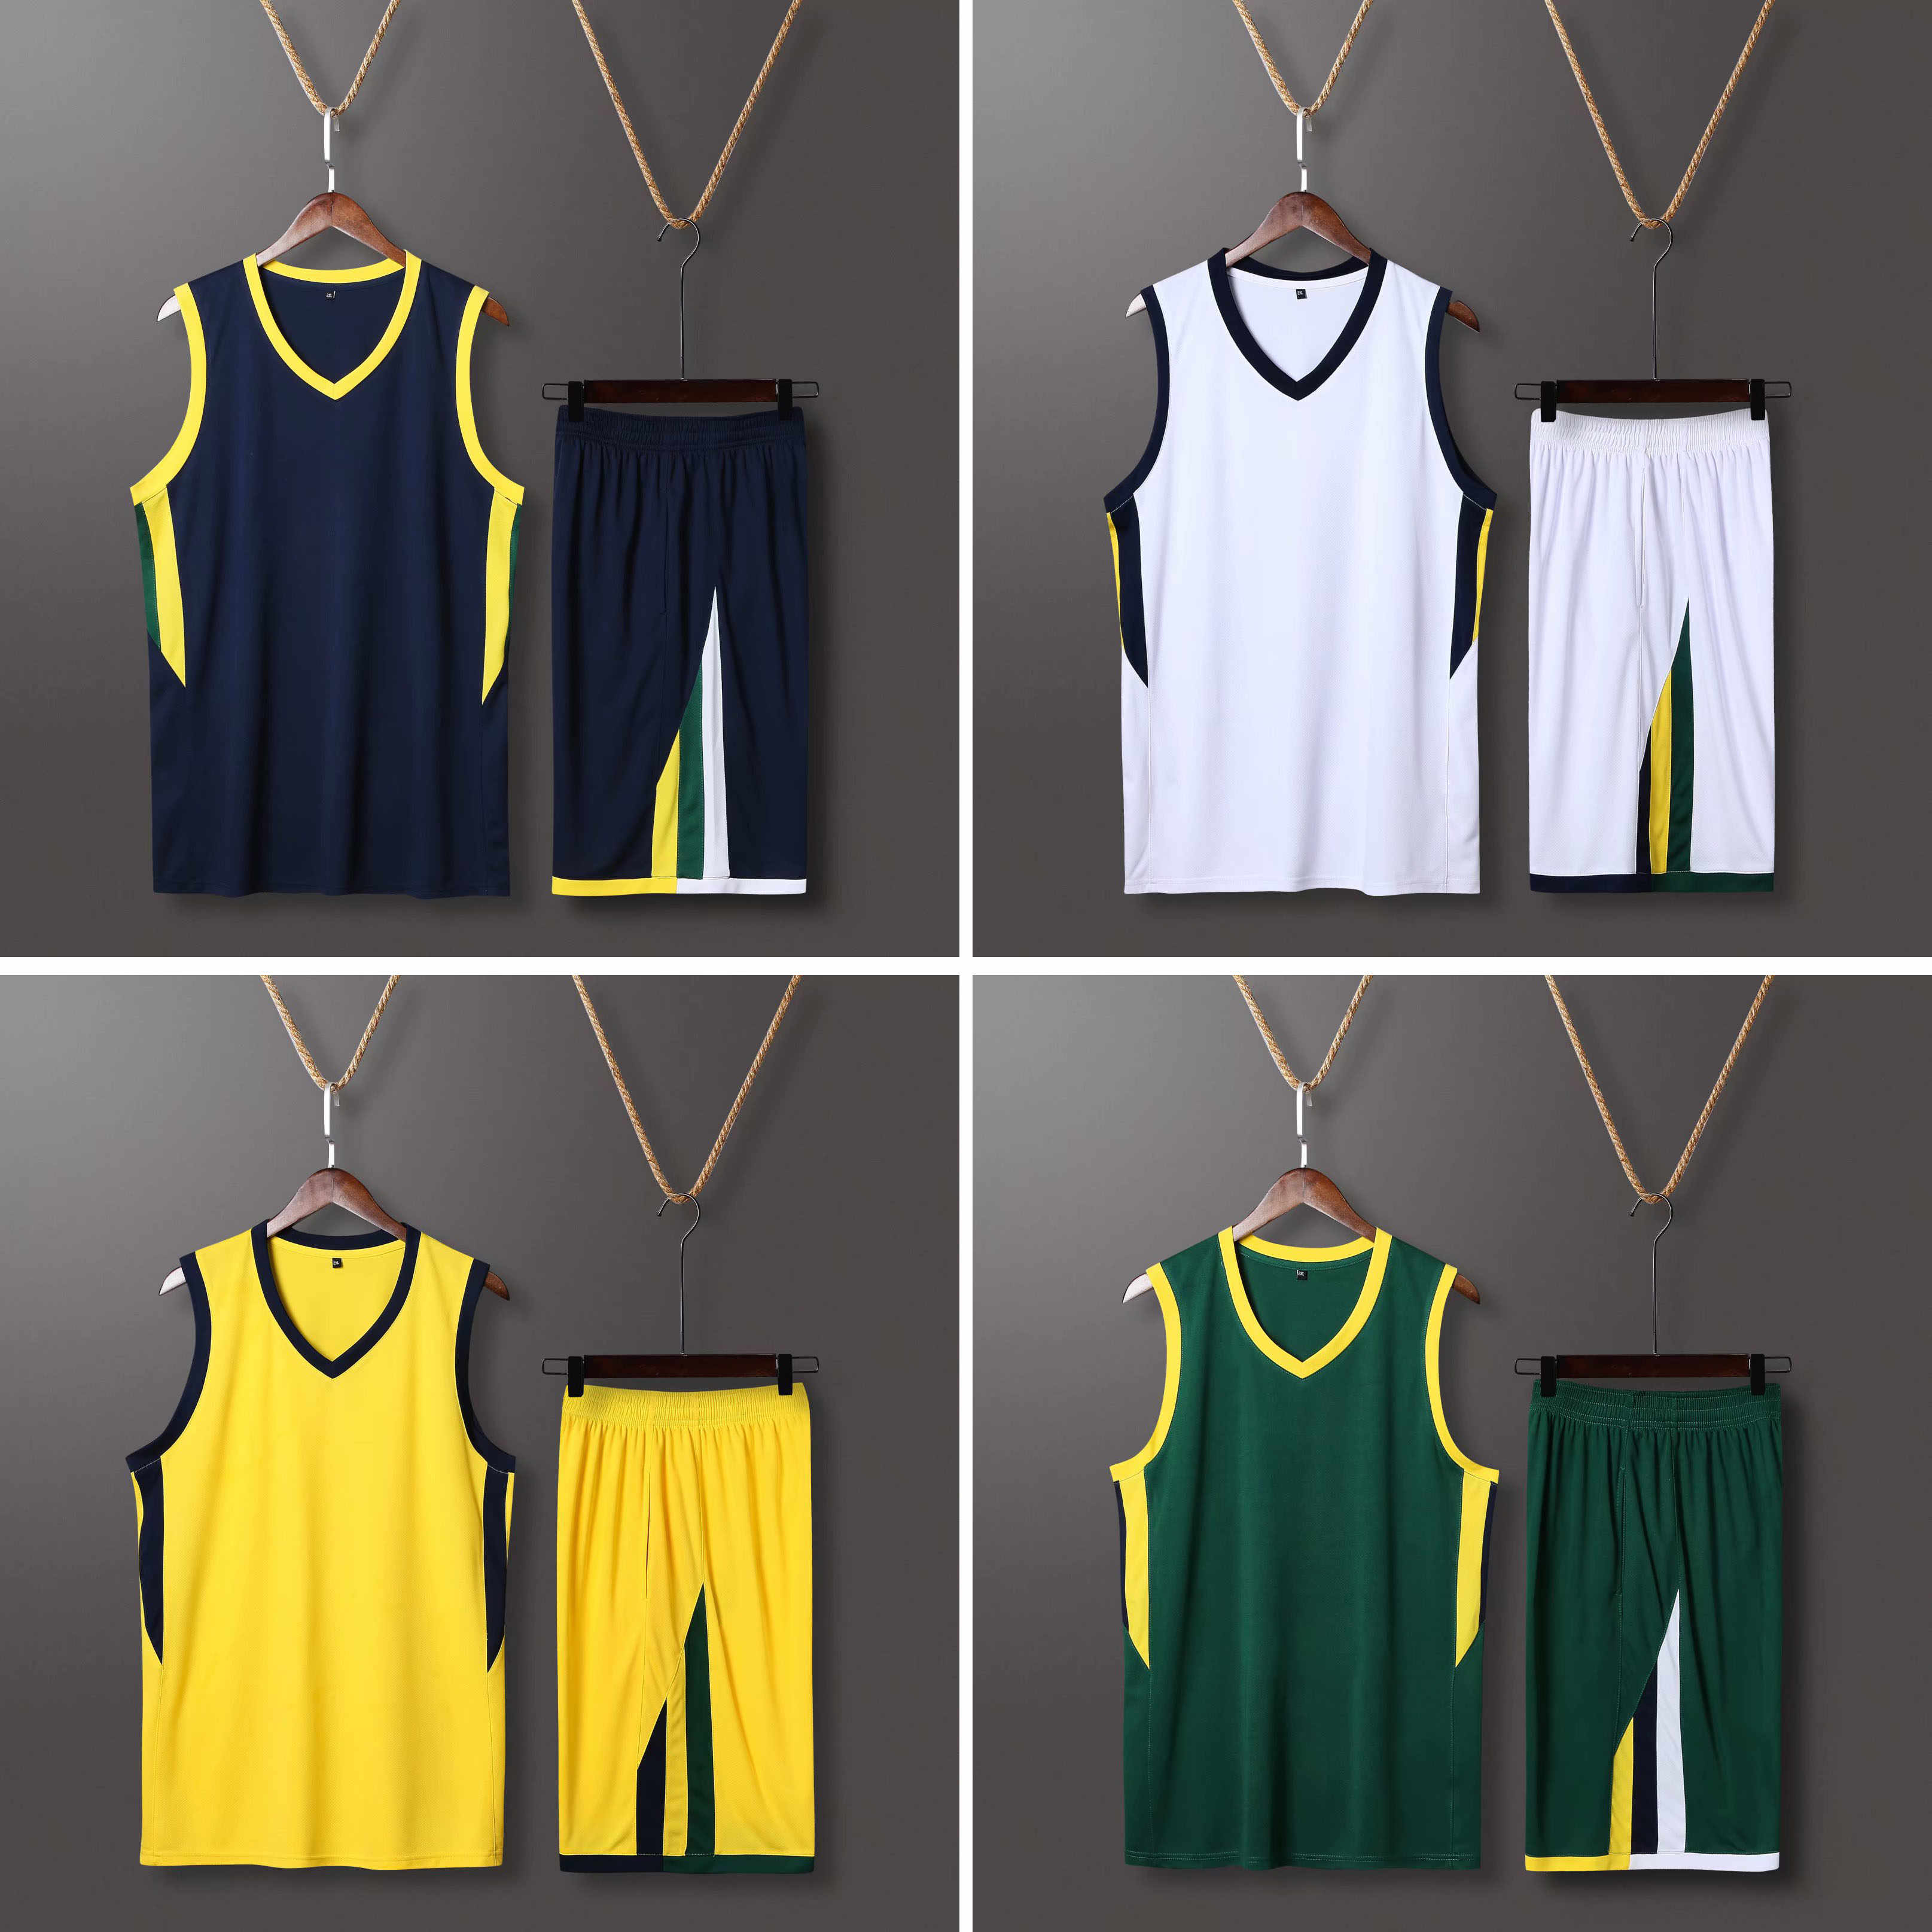 New Kid Men Throwback basketball Team jerseys sets USA college Kits Shorts Side Pocket , basketball Shirt uniforms customized